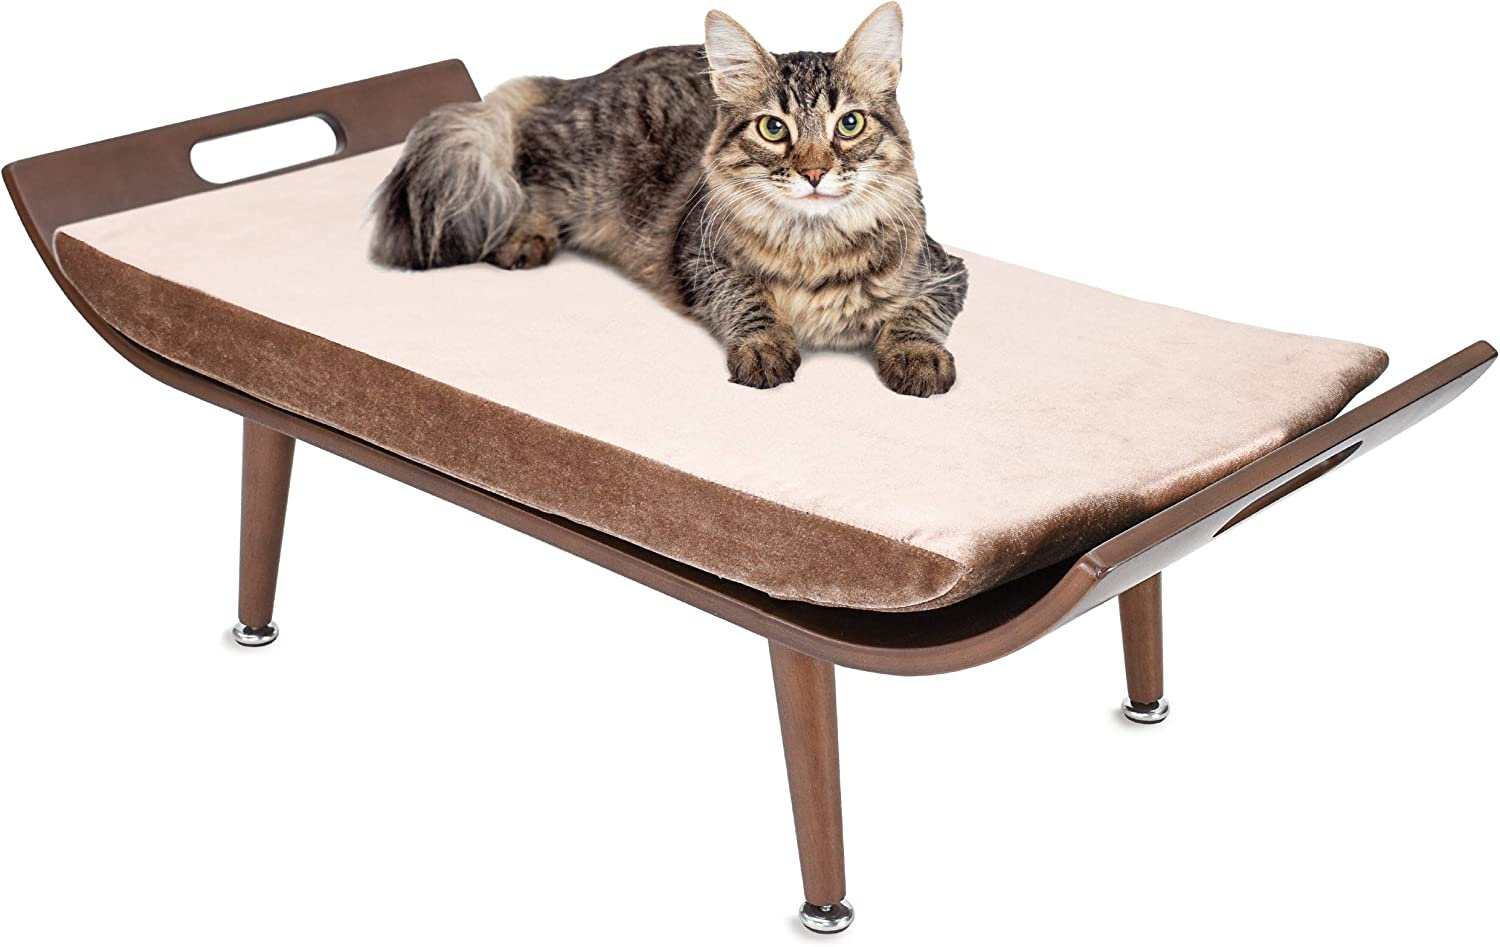 Penn-Plax Cat Walk Furniture: Luxury Lounger Cat Bed – Mid-Century Modern – For All Size Cats - Brown (CATFF18)